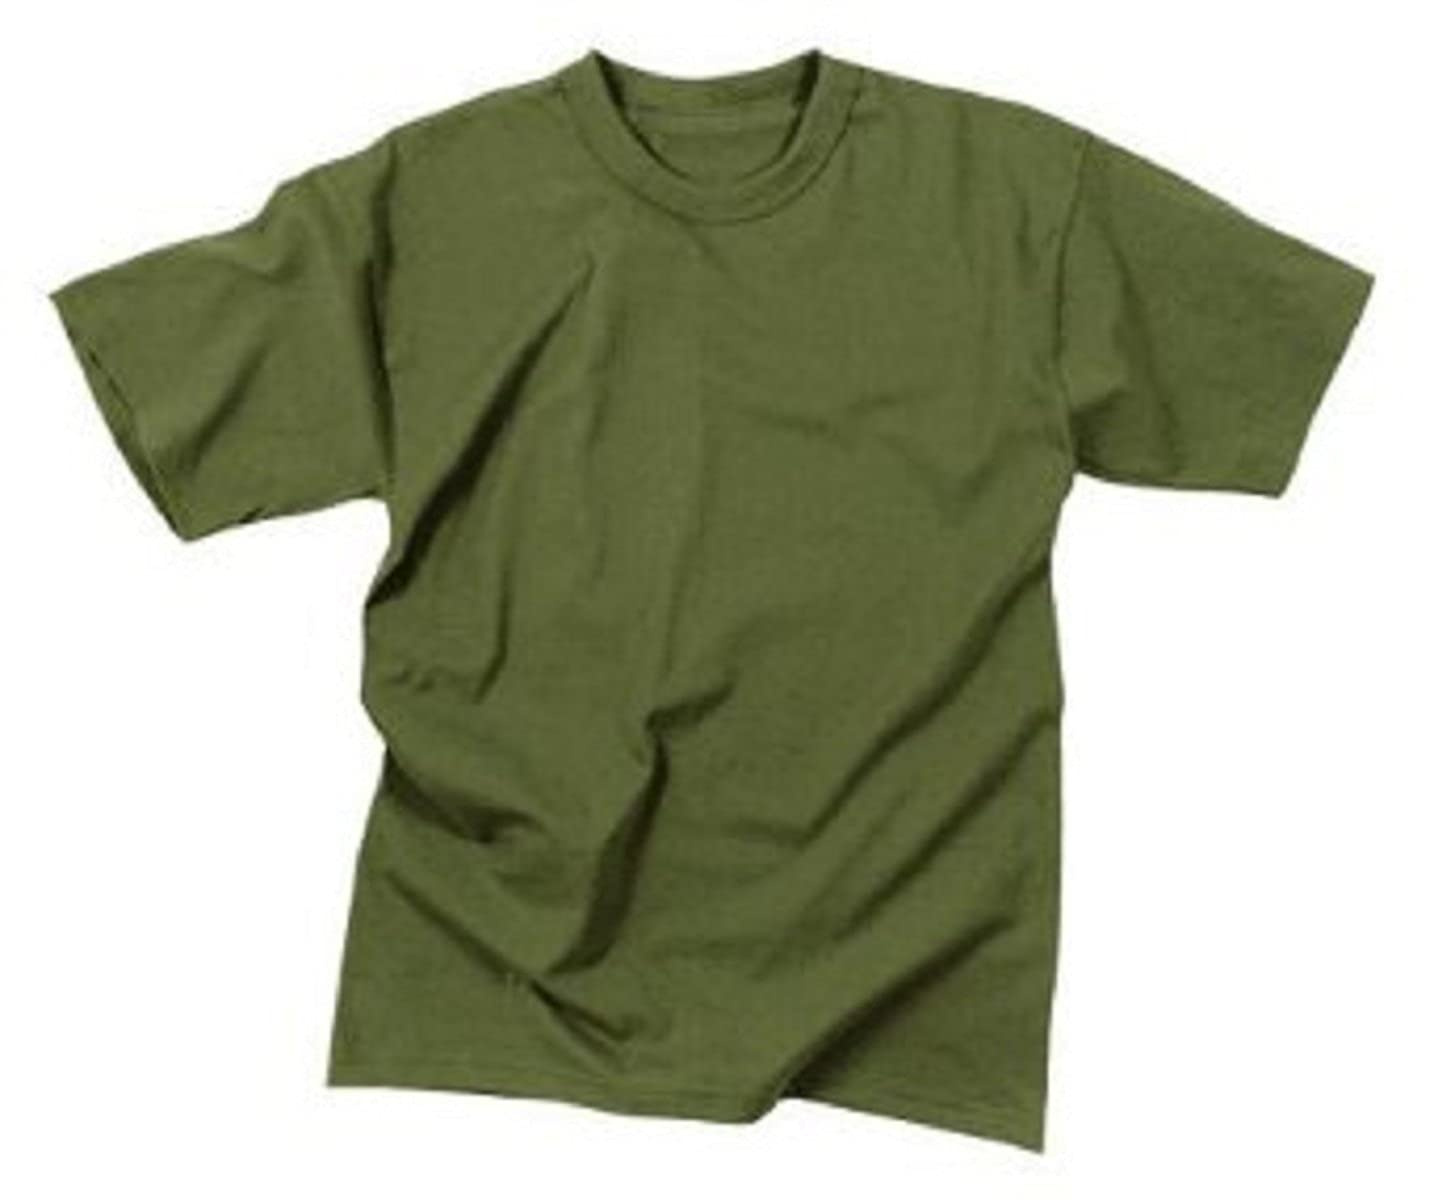 Amazon.com  Olive Drab Military T-Shirt (100% Cotton) 7979 Size Medium   Military Apparel Shirts  Clothing 86a6afe98a0